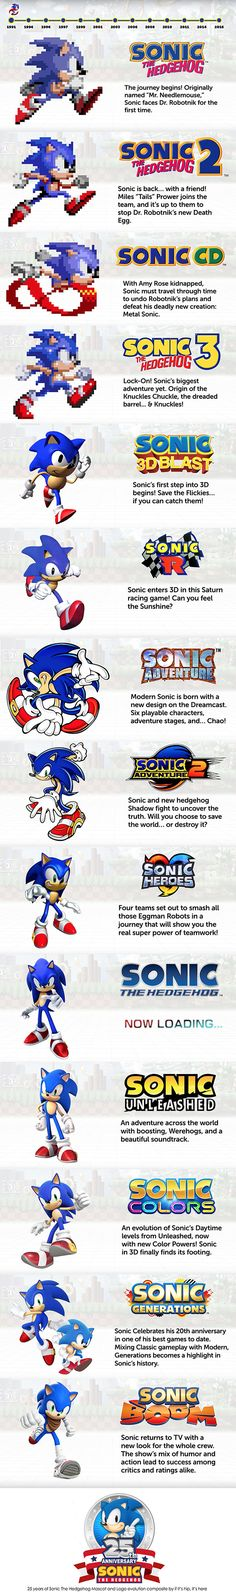 The evolution of 25 years of Sonic The Hedgehog.